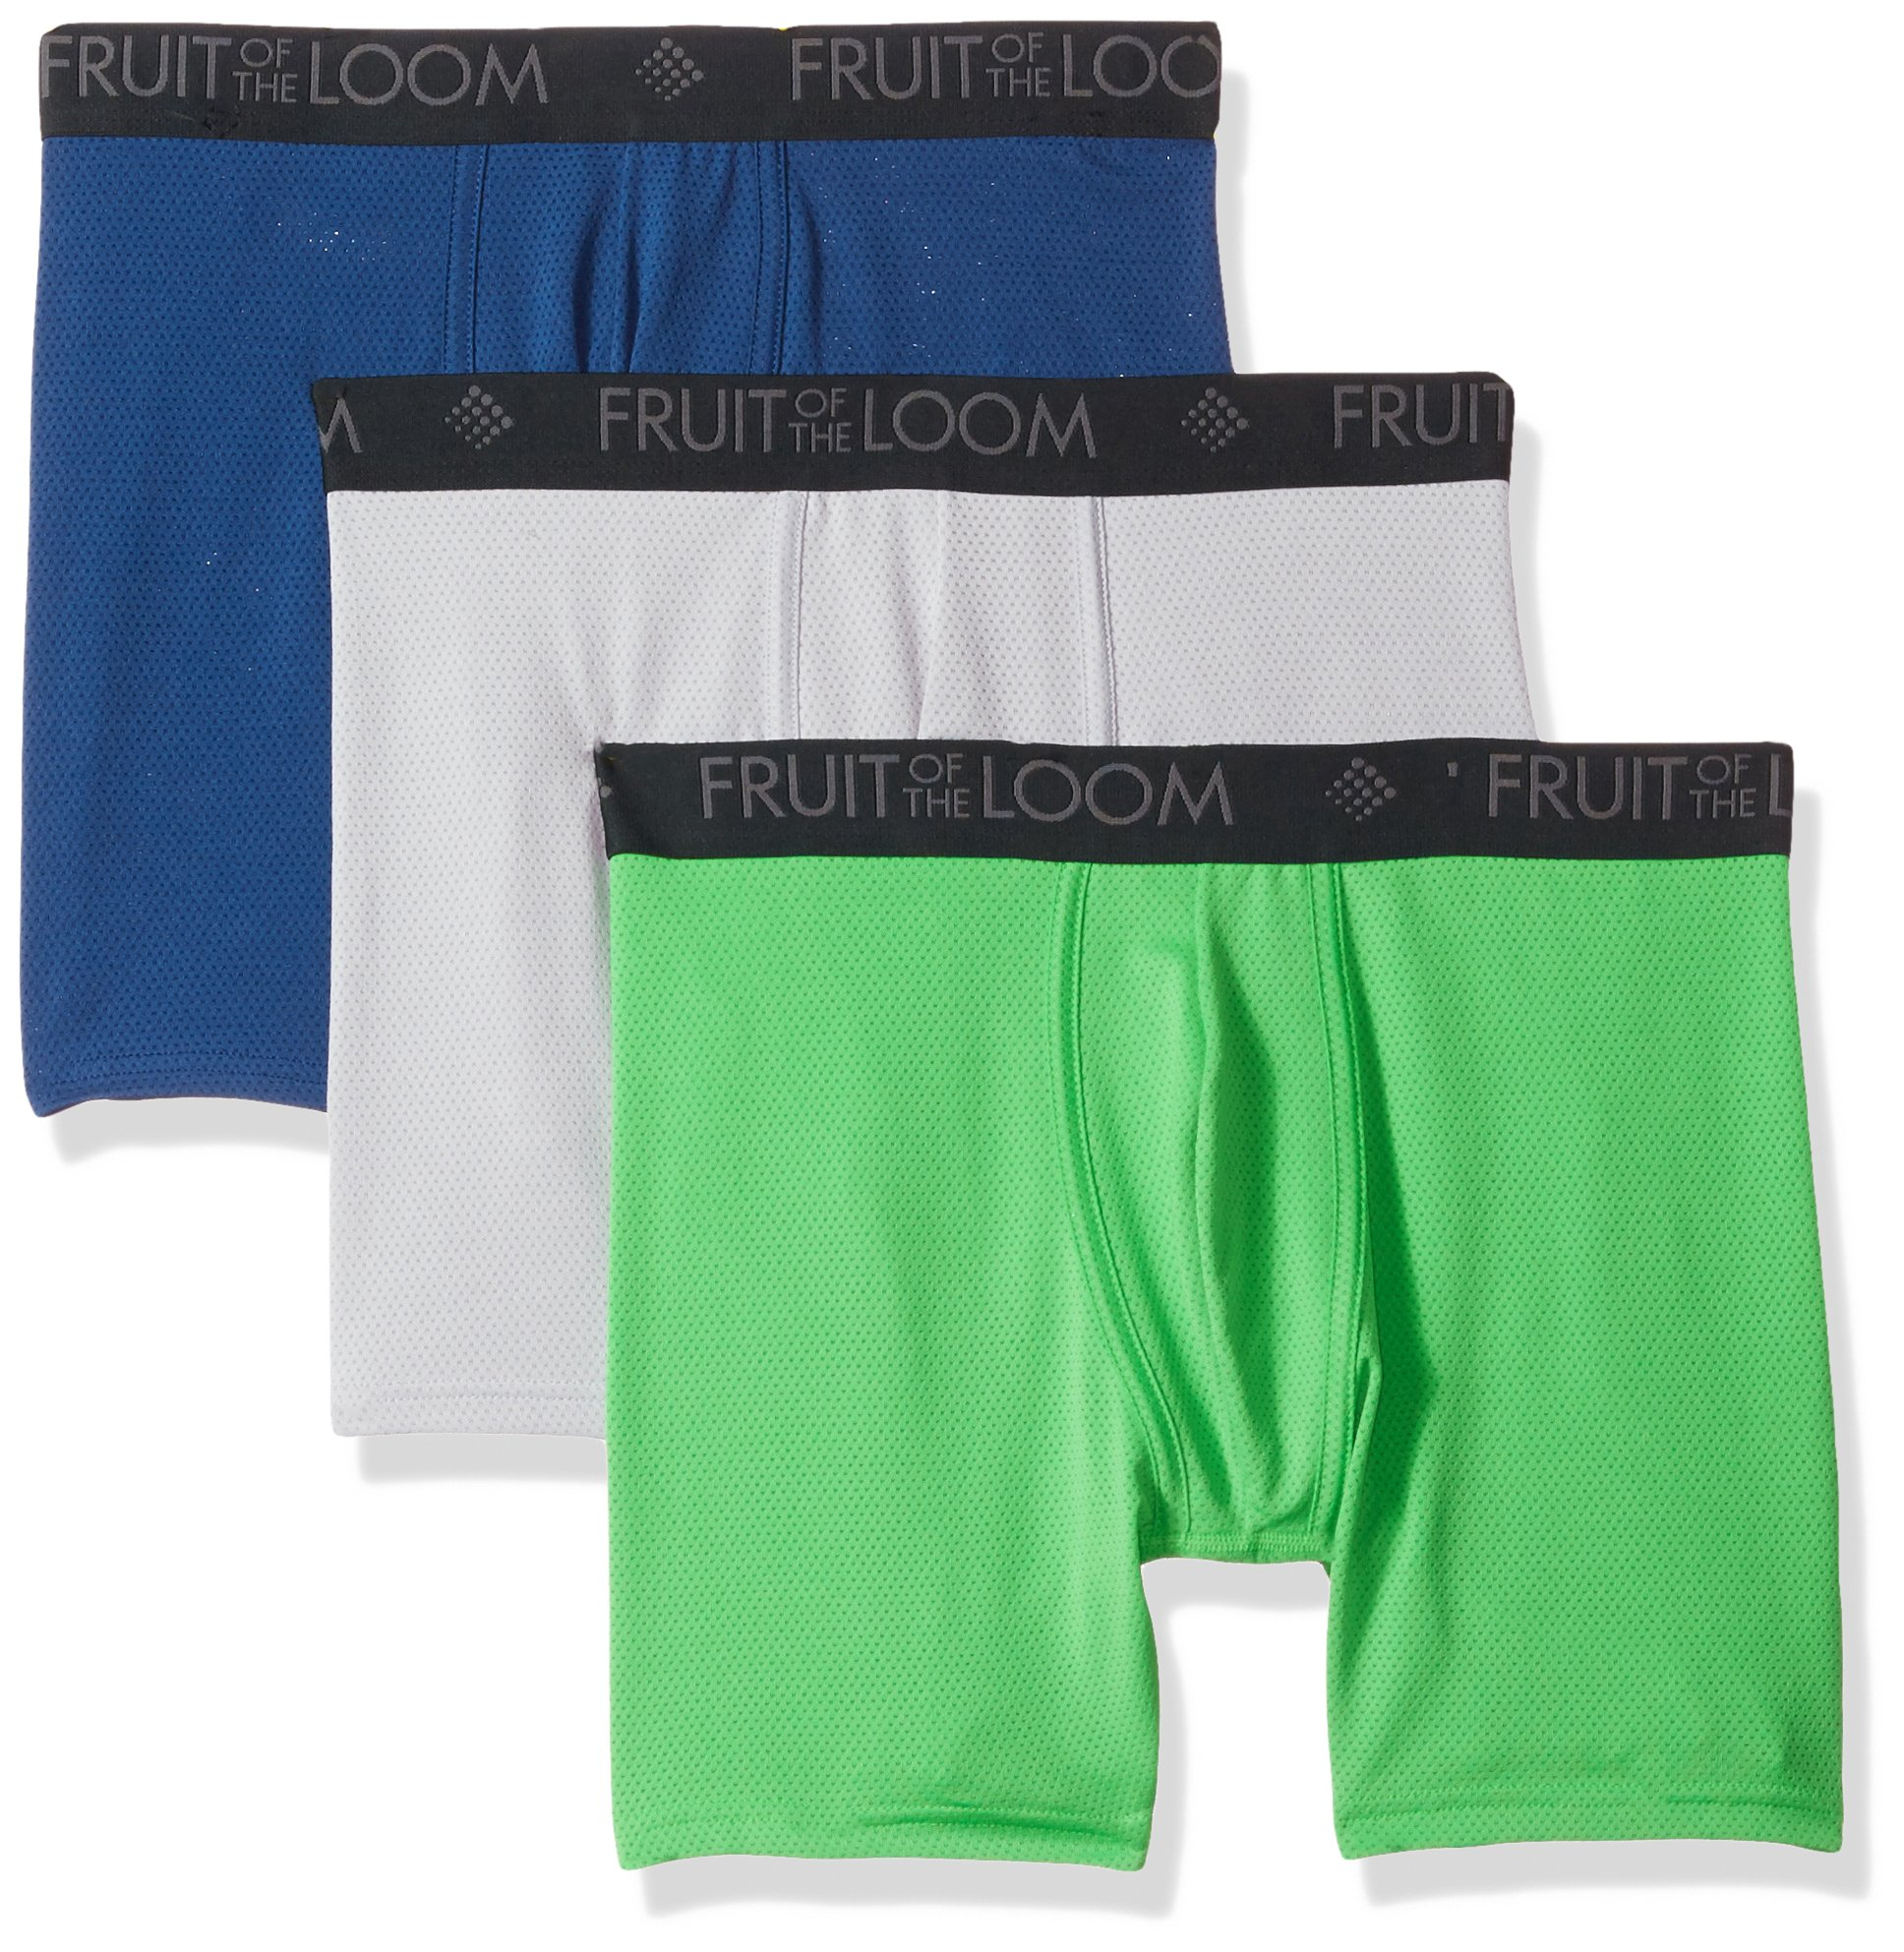 Fruit of the Loom Men's 3-Pack Breathable Lightweight Micromesh Boxer Brief, Assorted, Large